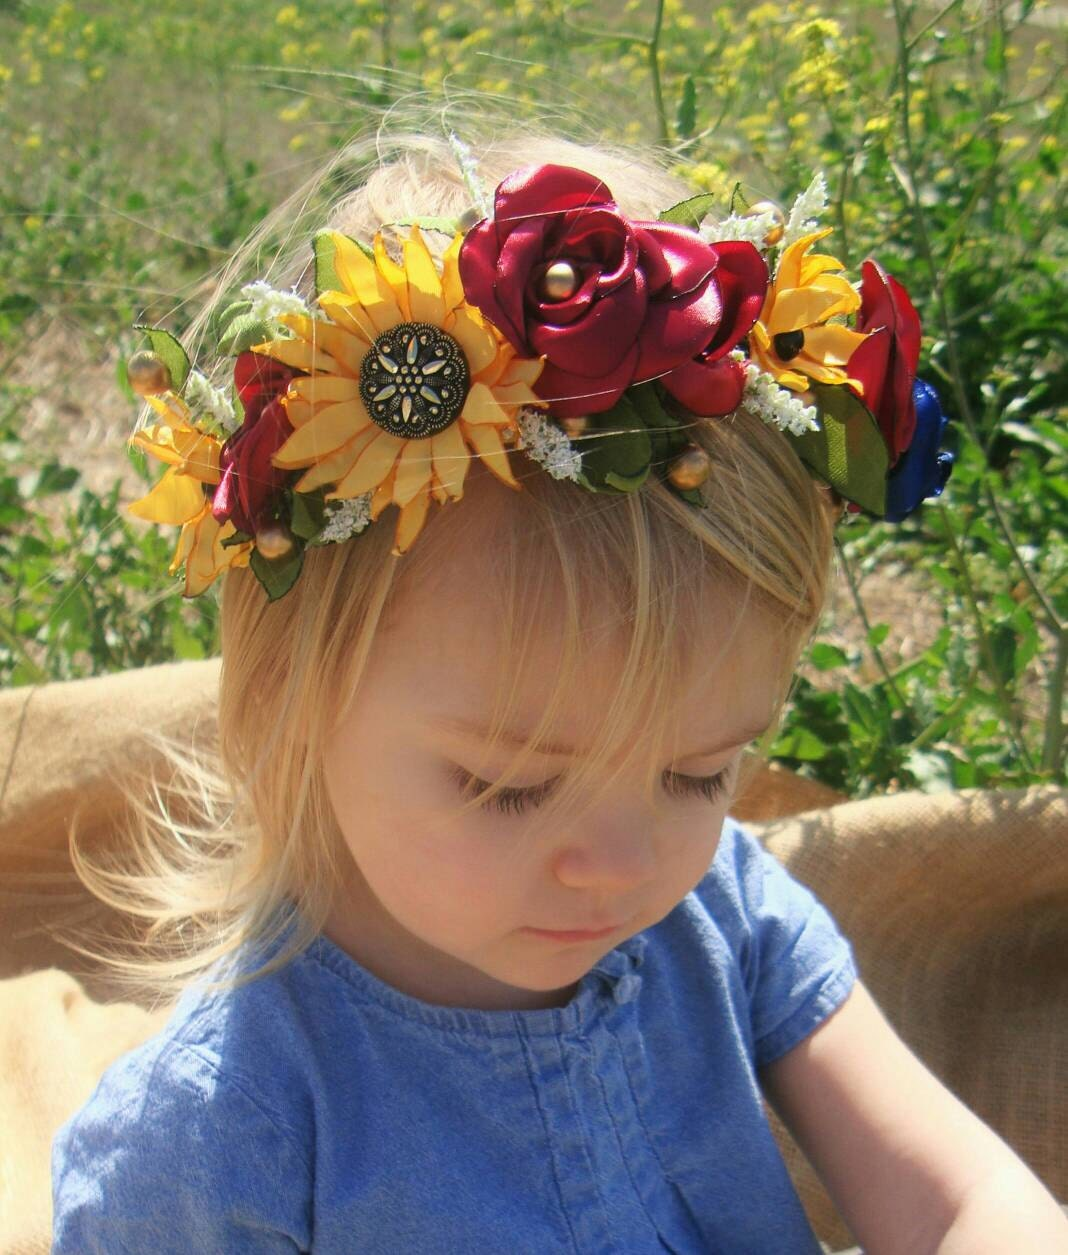 Spring Girls Red Roses And Sunflower Flower Crown Head Wreath